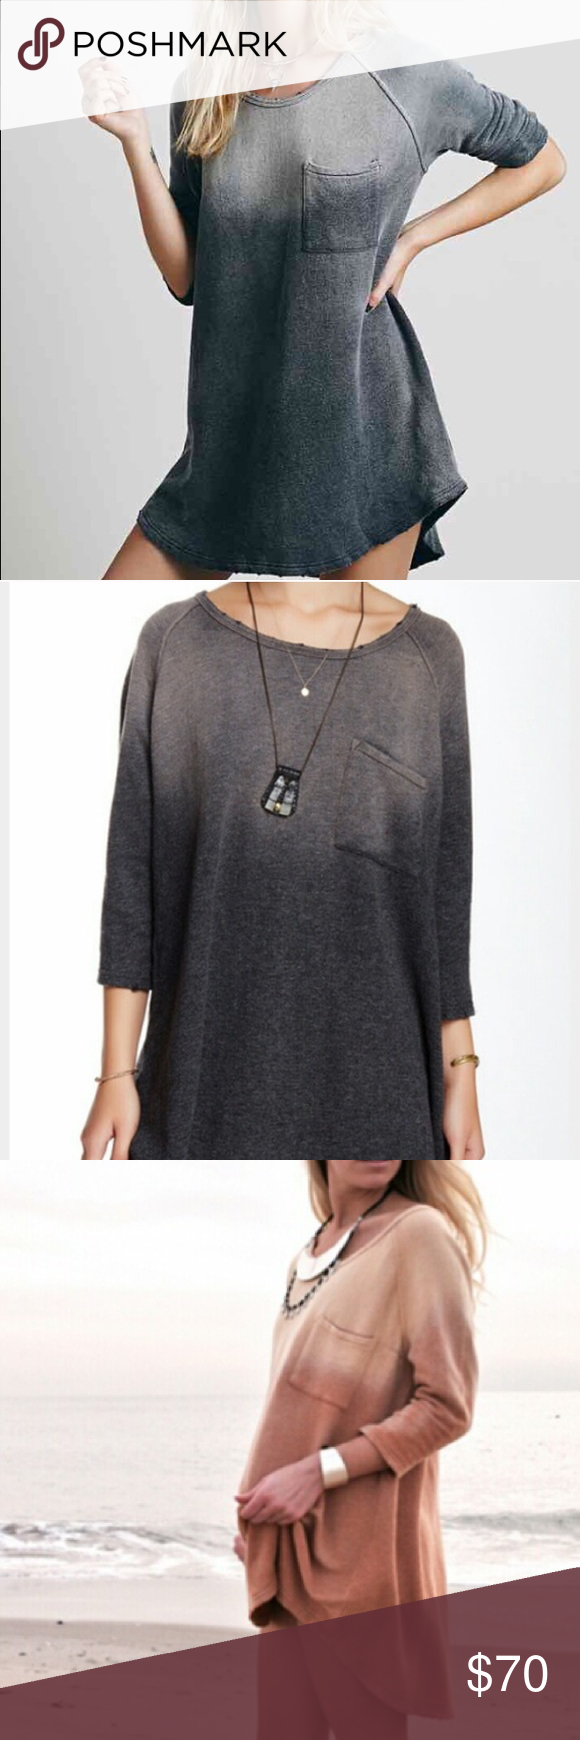 Free People ombré tunic dress New with tags. Free People ombré tunic dress. Lightweight sweatshirt material. Color seen in first two photos. Size medium but runs a little big, could also fit a large. Free People Tops Tunics